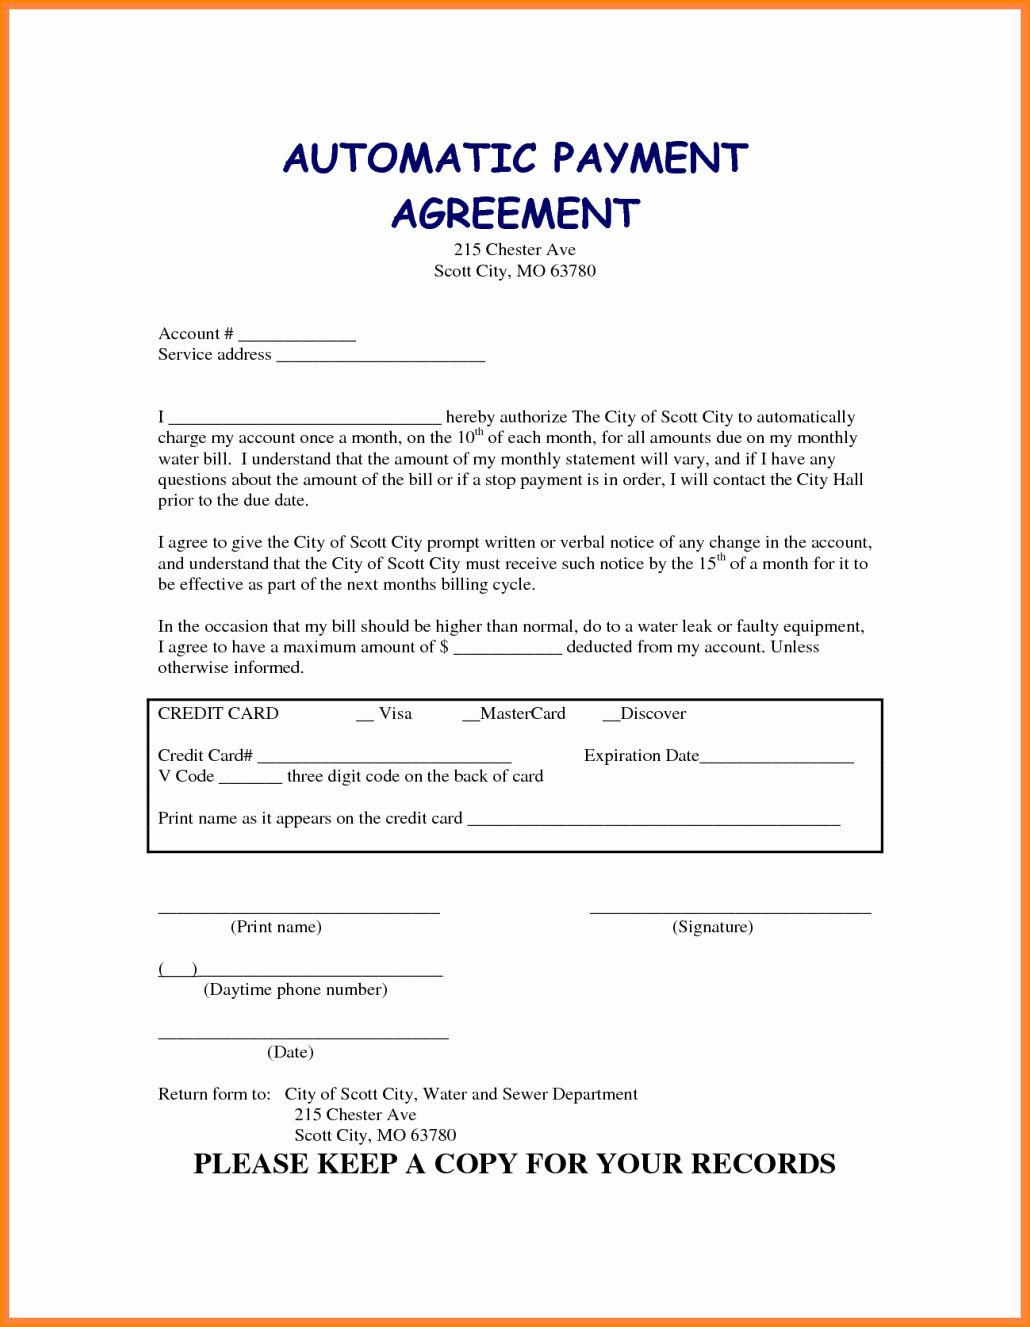 Car Payment Contract Template Inspirational 5 Take Over Car Payments Contract Car Payment Contract Template Sell Car